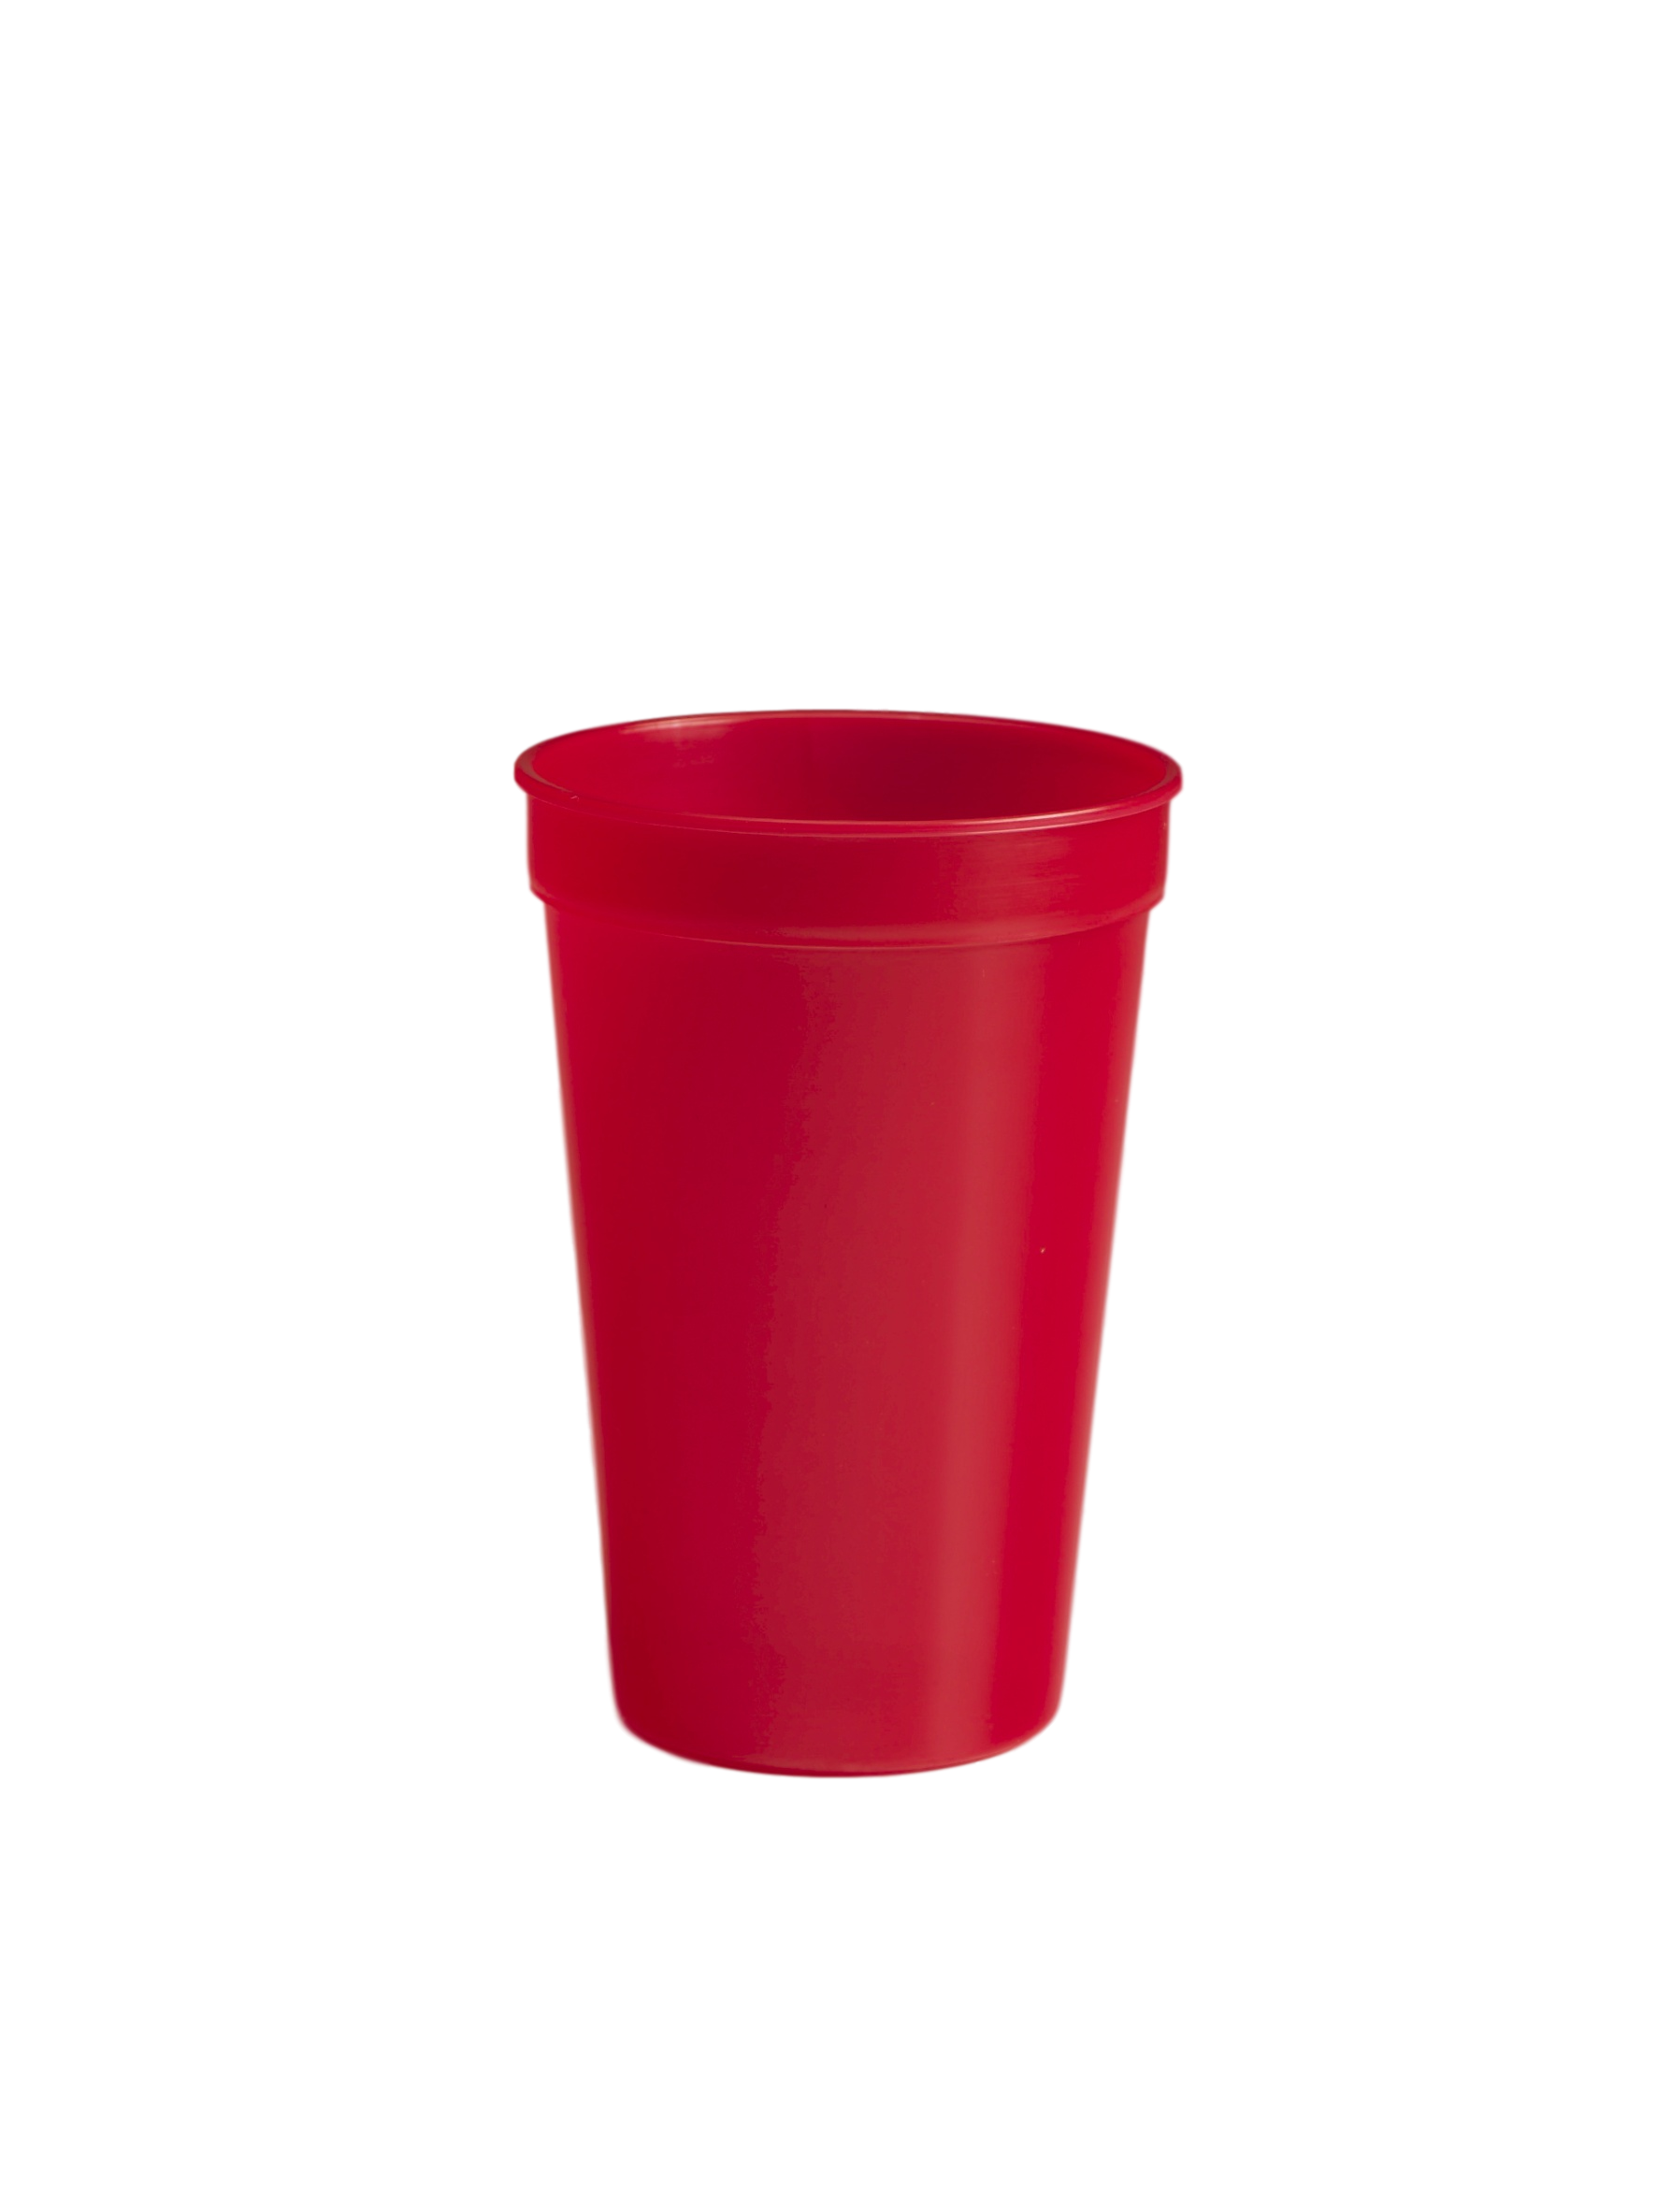 Red plastic cup png. Oz reusable stadium